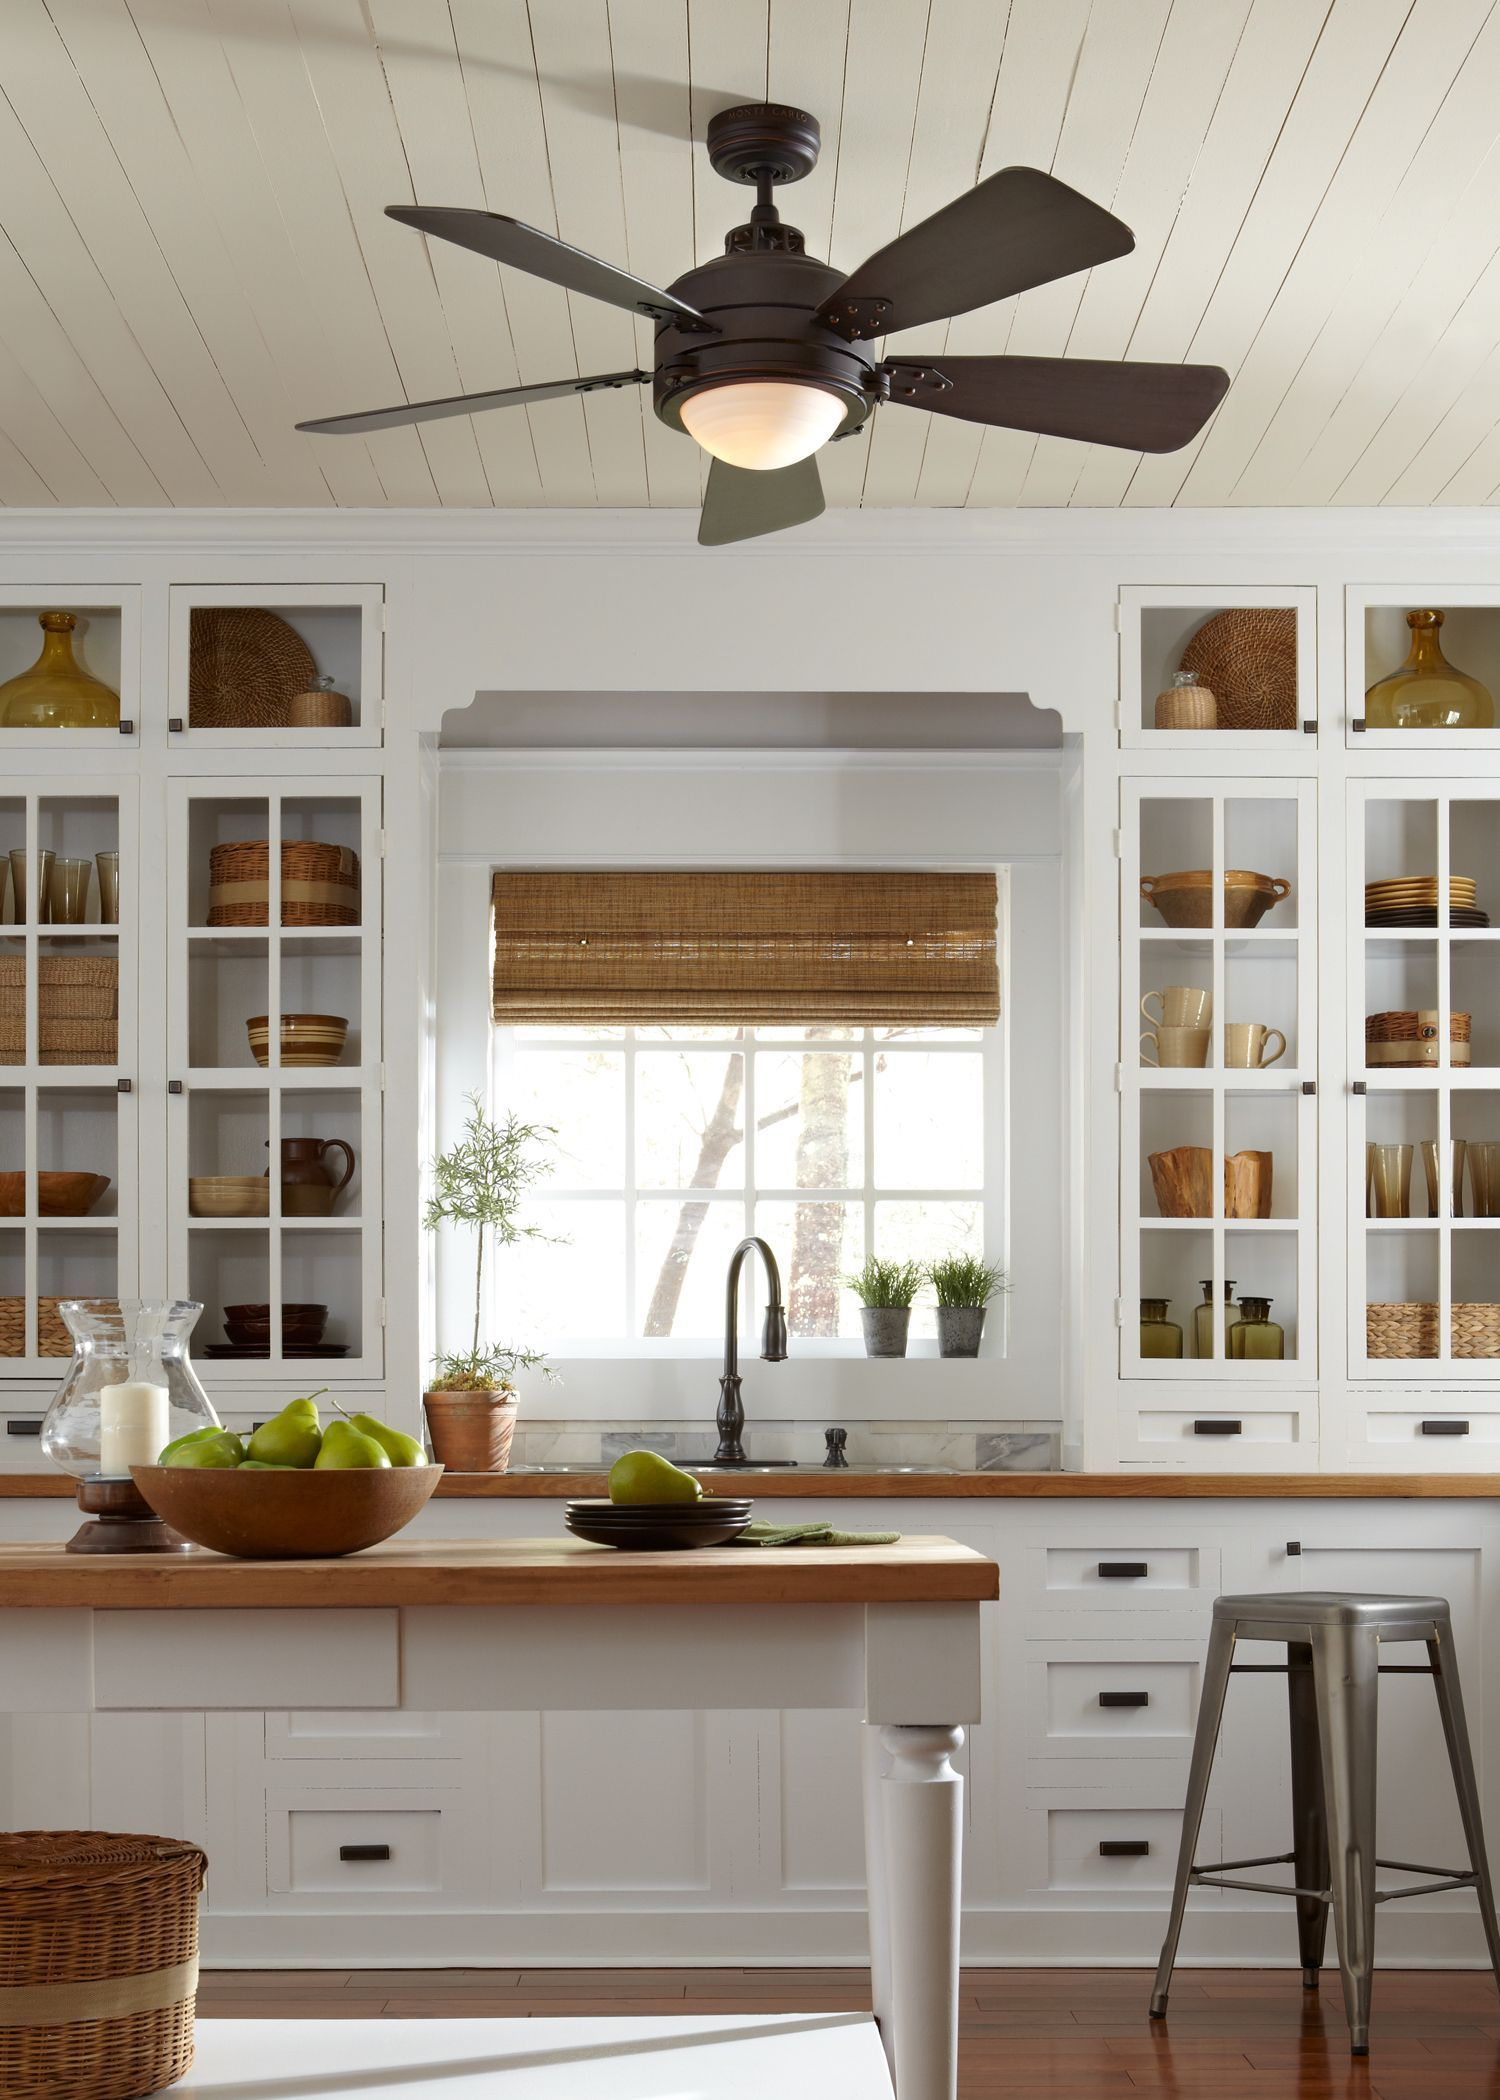 Kitchen Ceiling Fans Cool And Classic Design Of Ceiling Fans Ceiling Fan In Kitchen Kitchen Fan Kitchen Ceiling